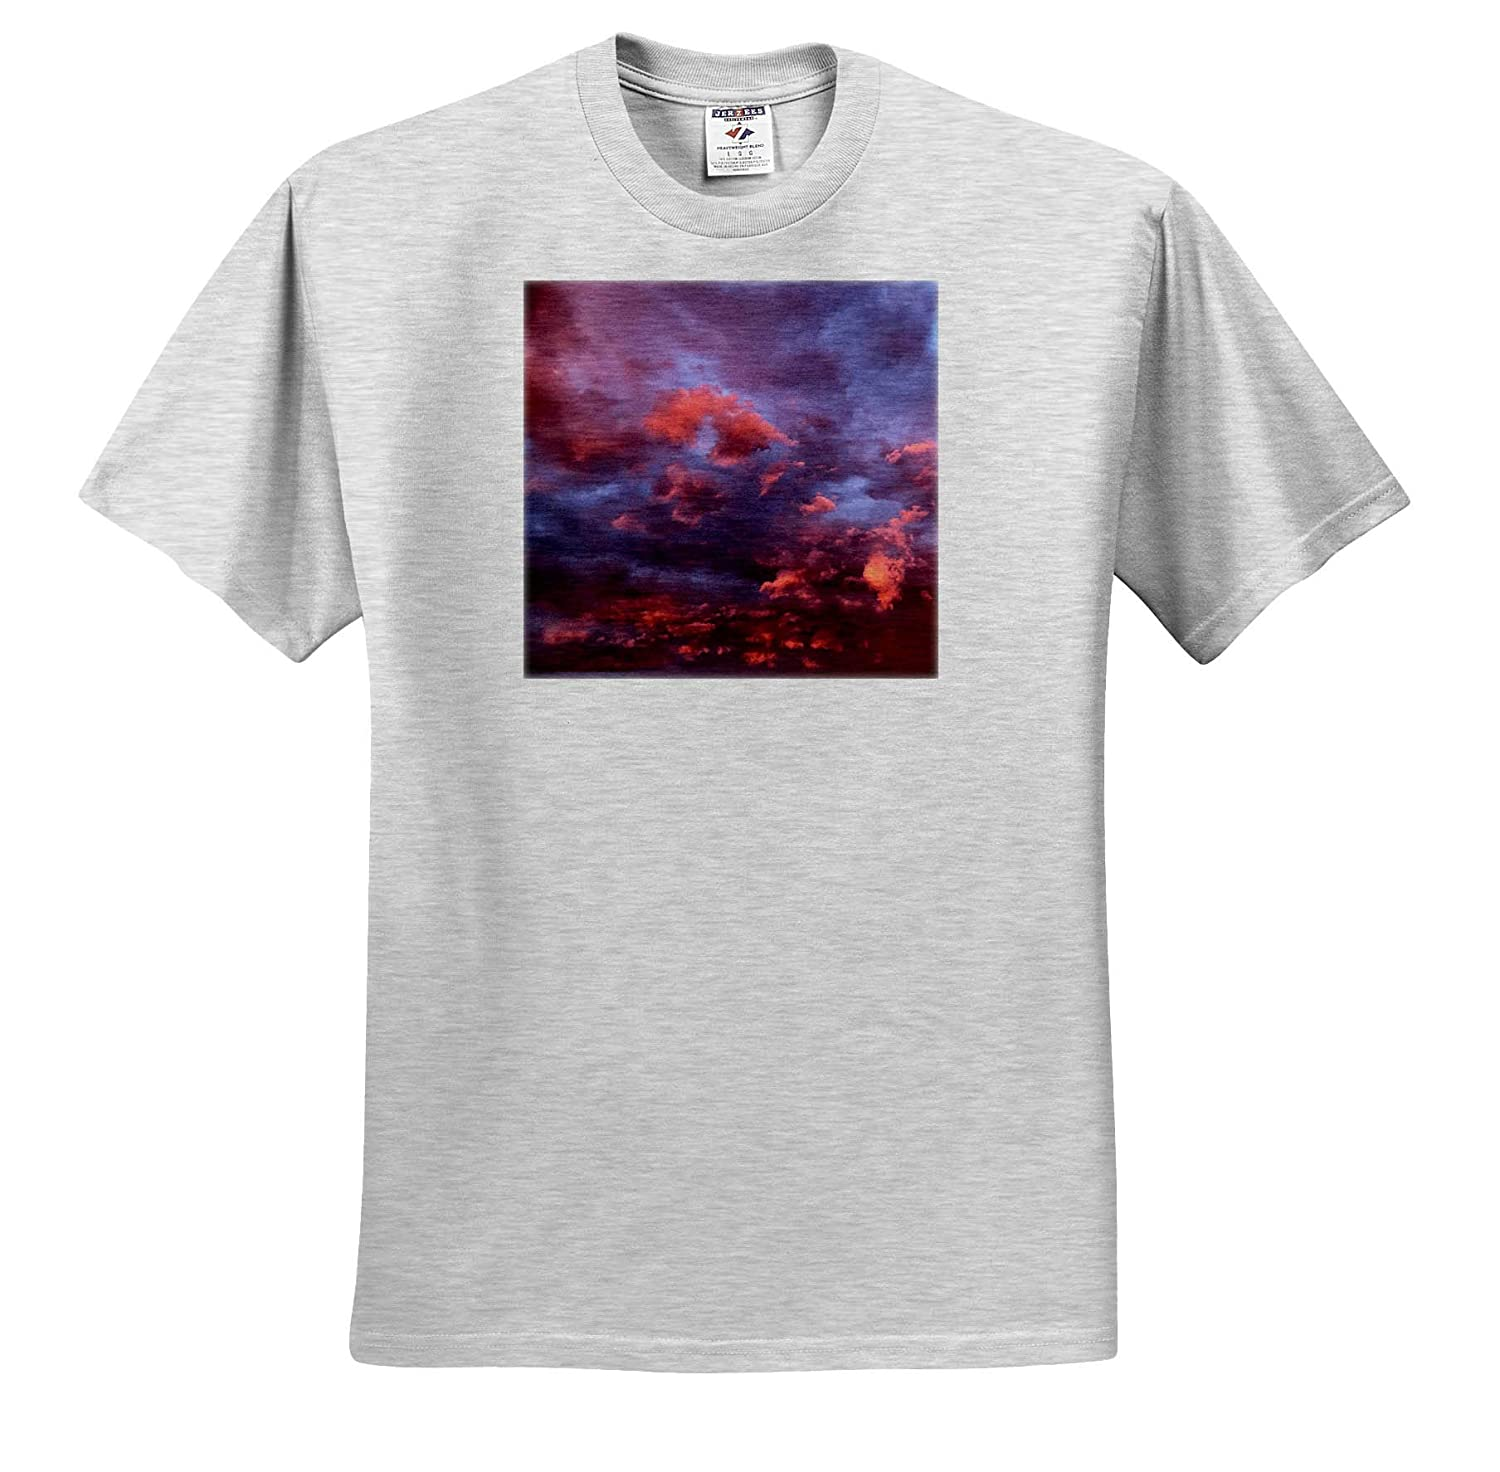 3dRose Stamp City - T-Shirts Photograph of a Super Amazing Sky in Between Thunderstorms Landscape